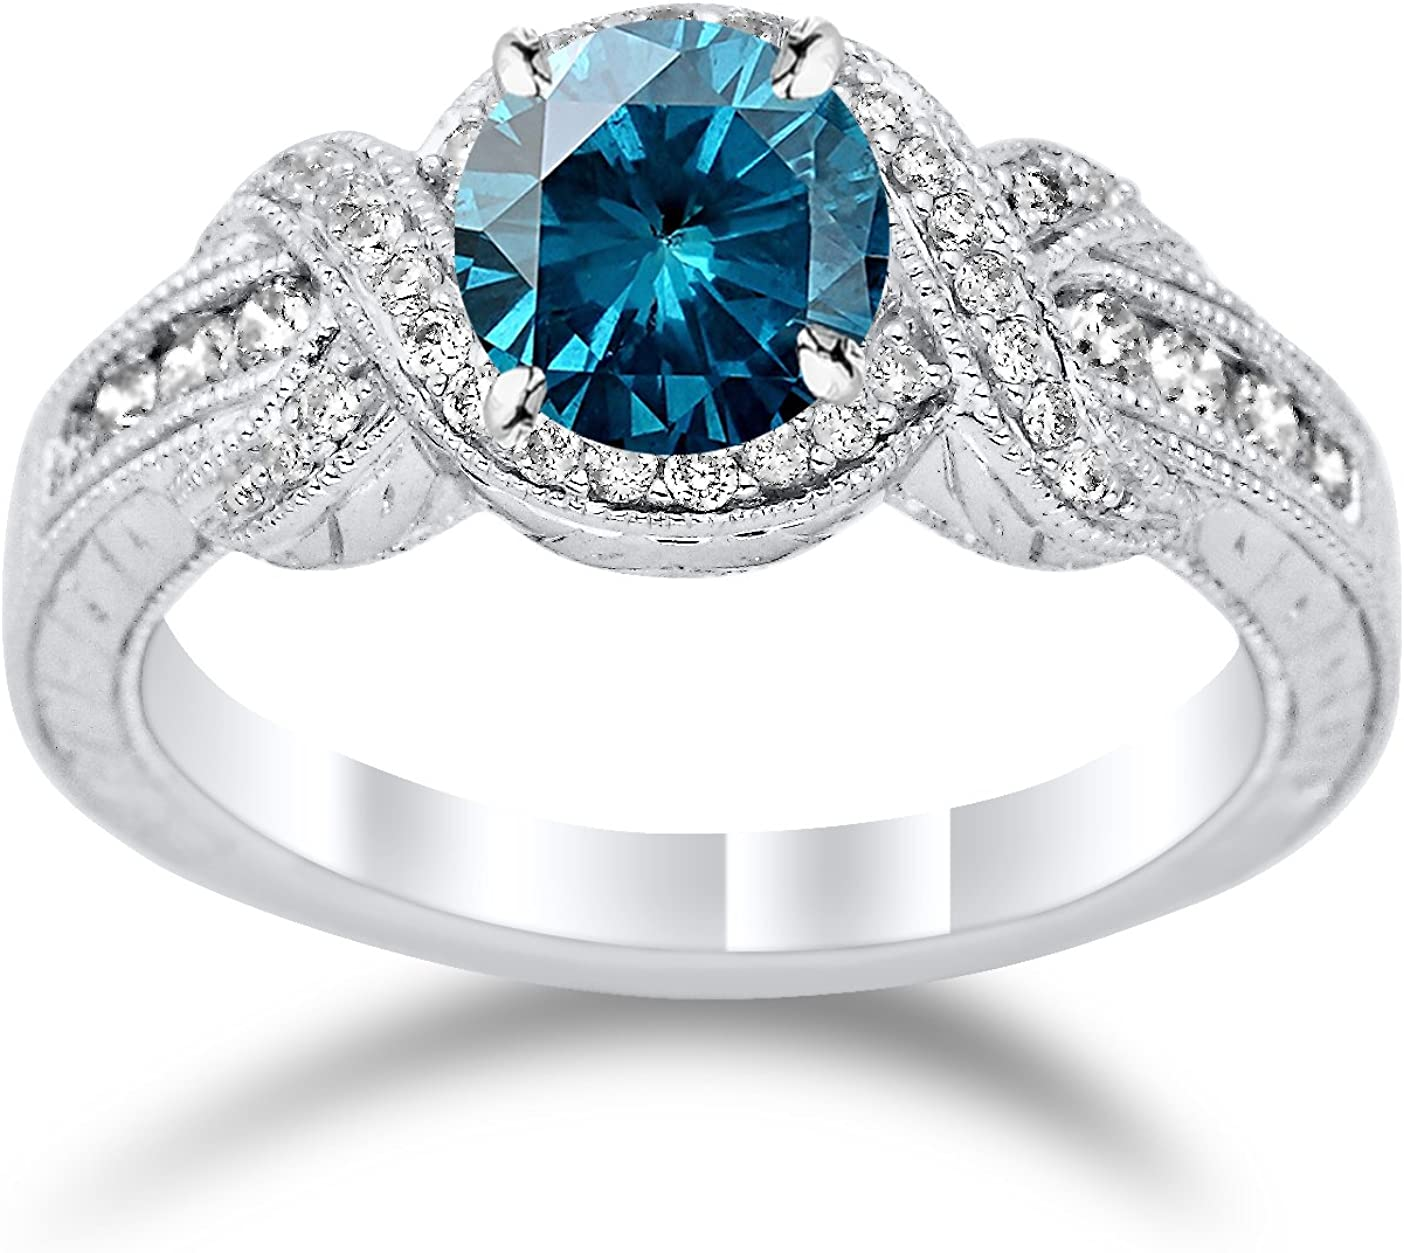 Twisting Channel Set Knot Diamond Engagement Ring with a 1 Carat Blue Diamond Heirloom Quality Center